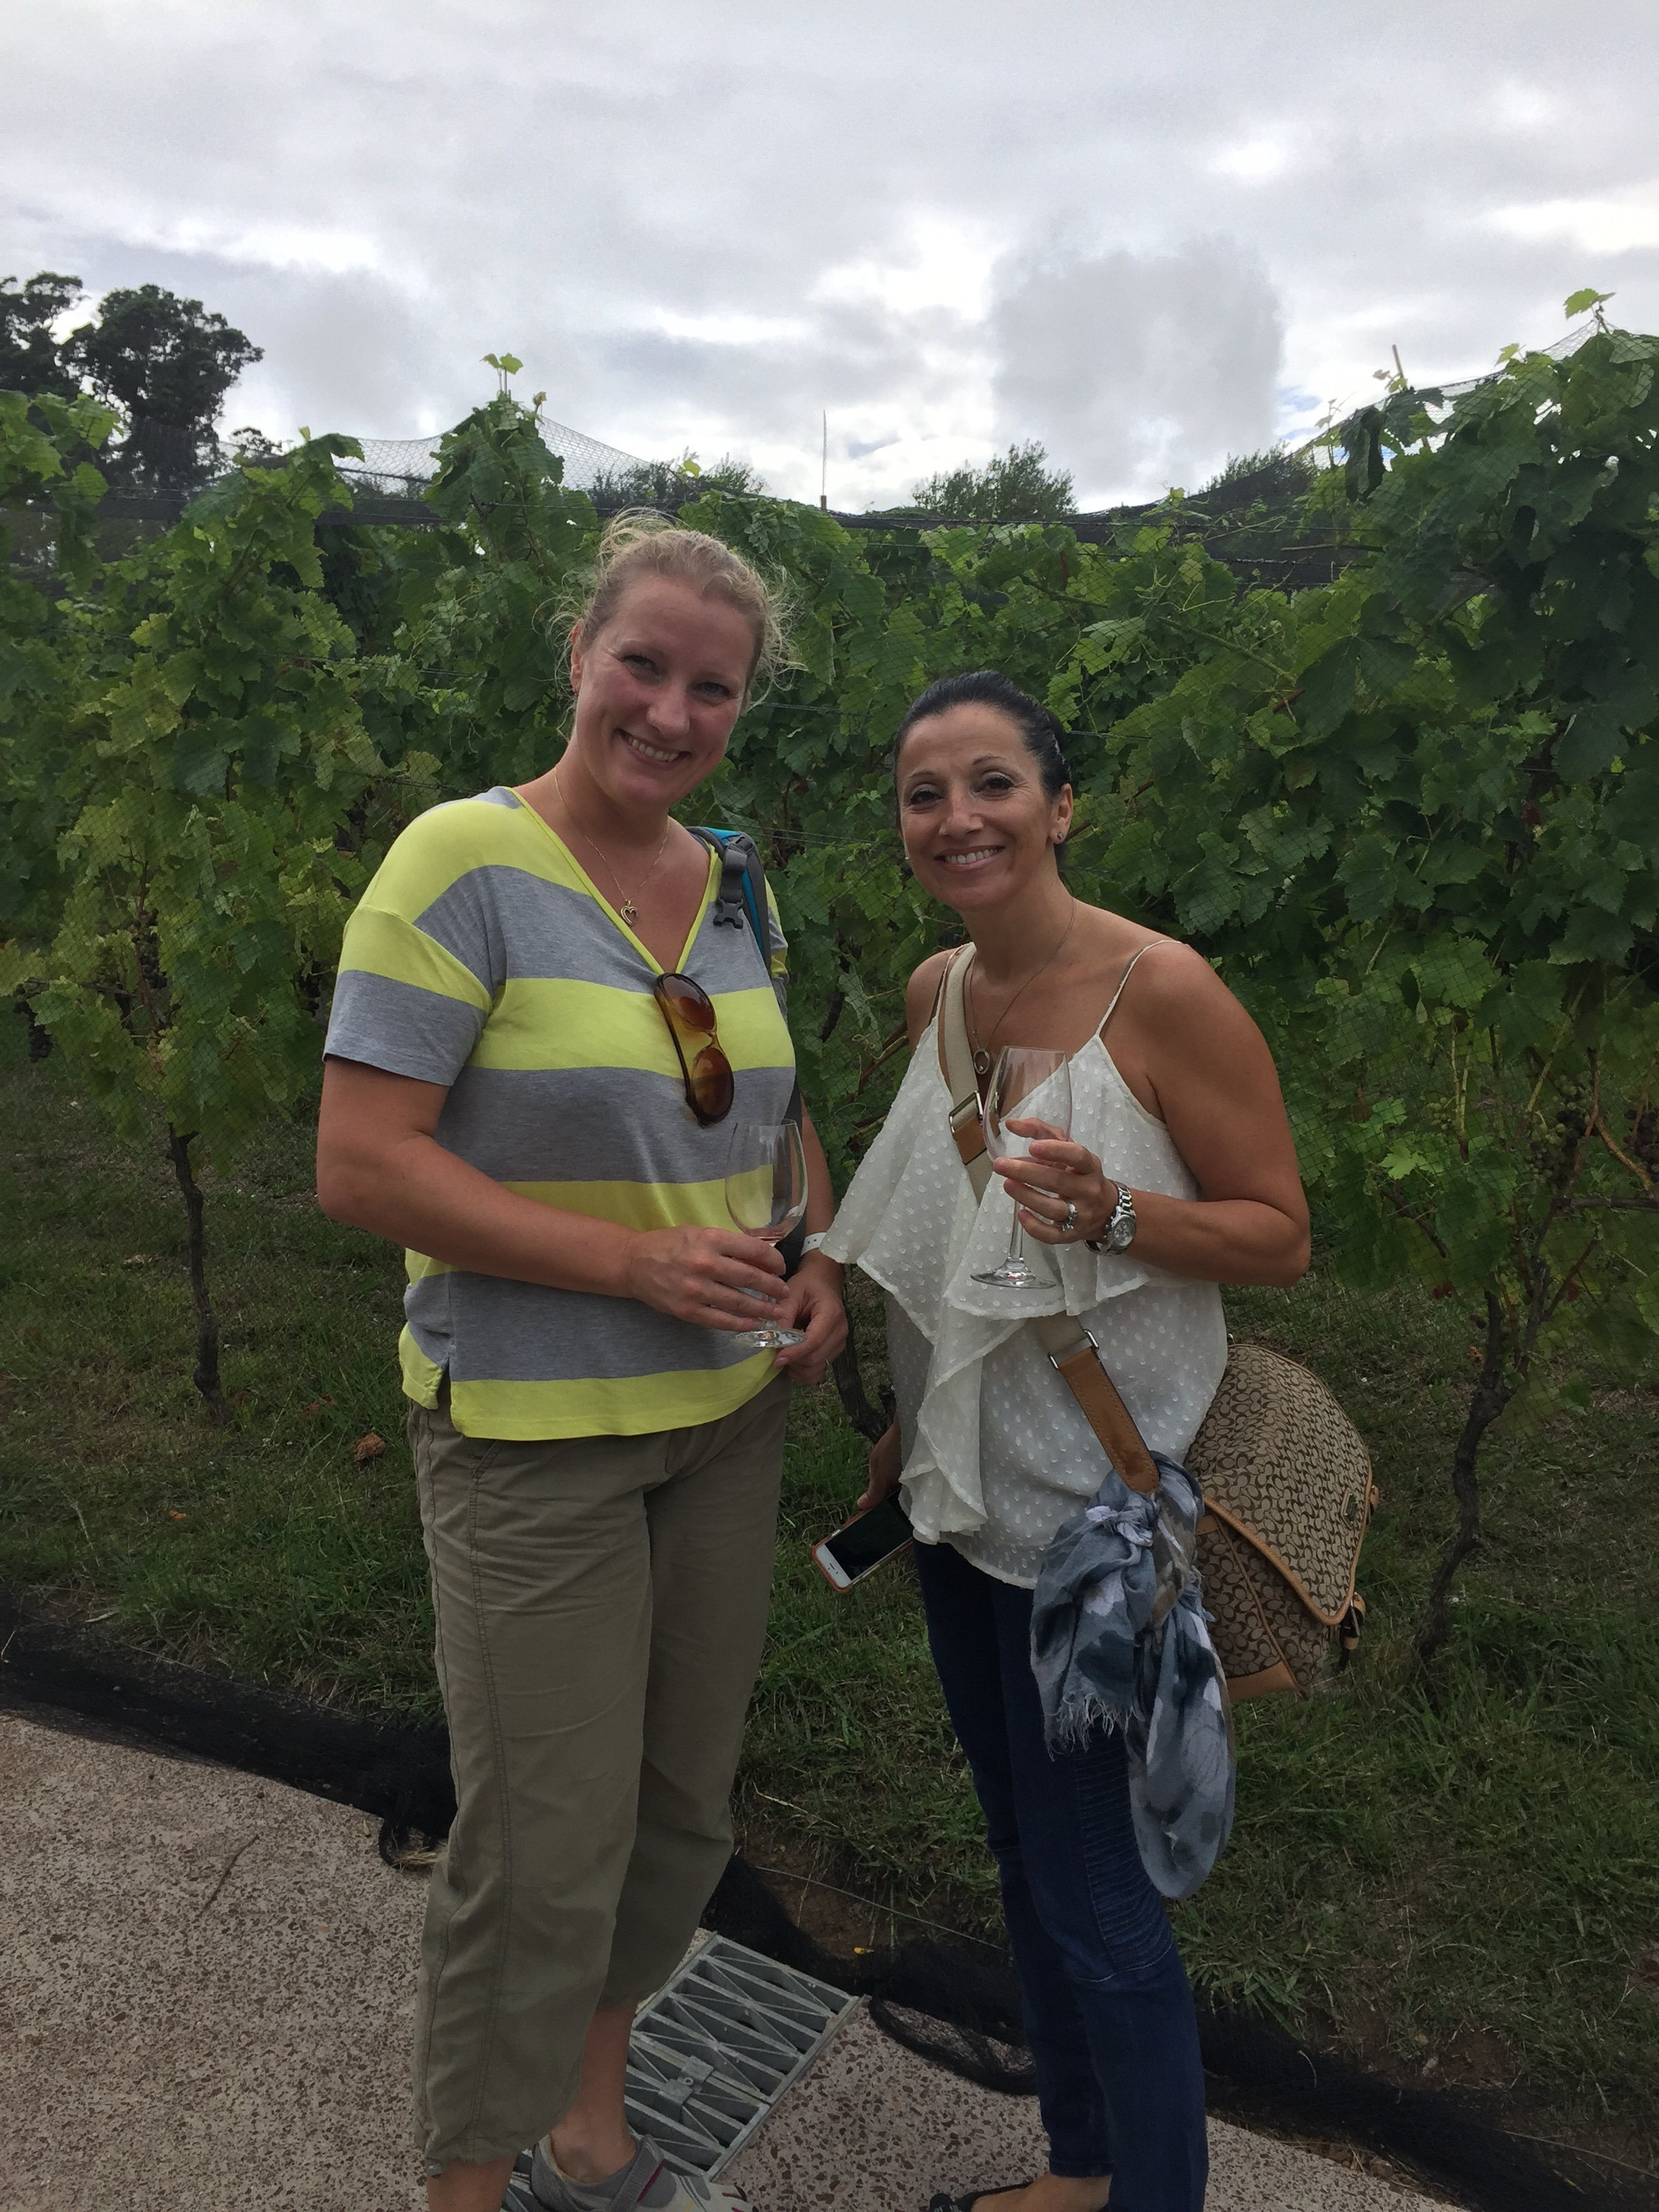 Jo and Roxanne naming the grapes for later consumption.